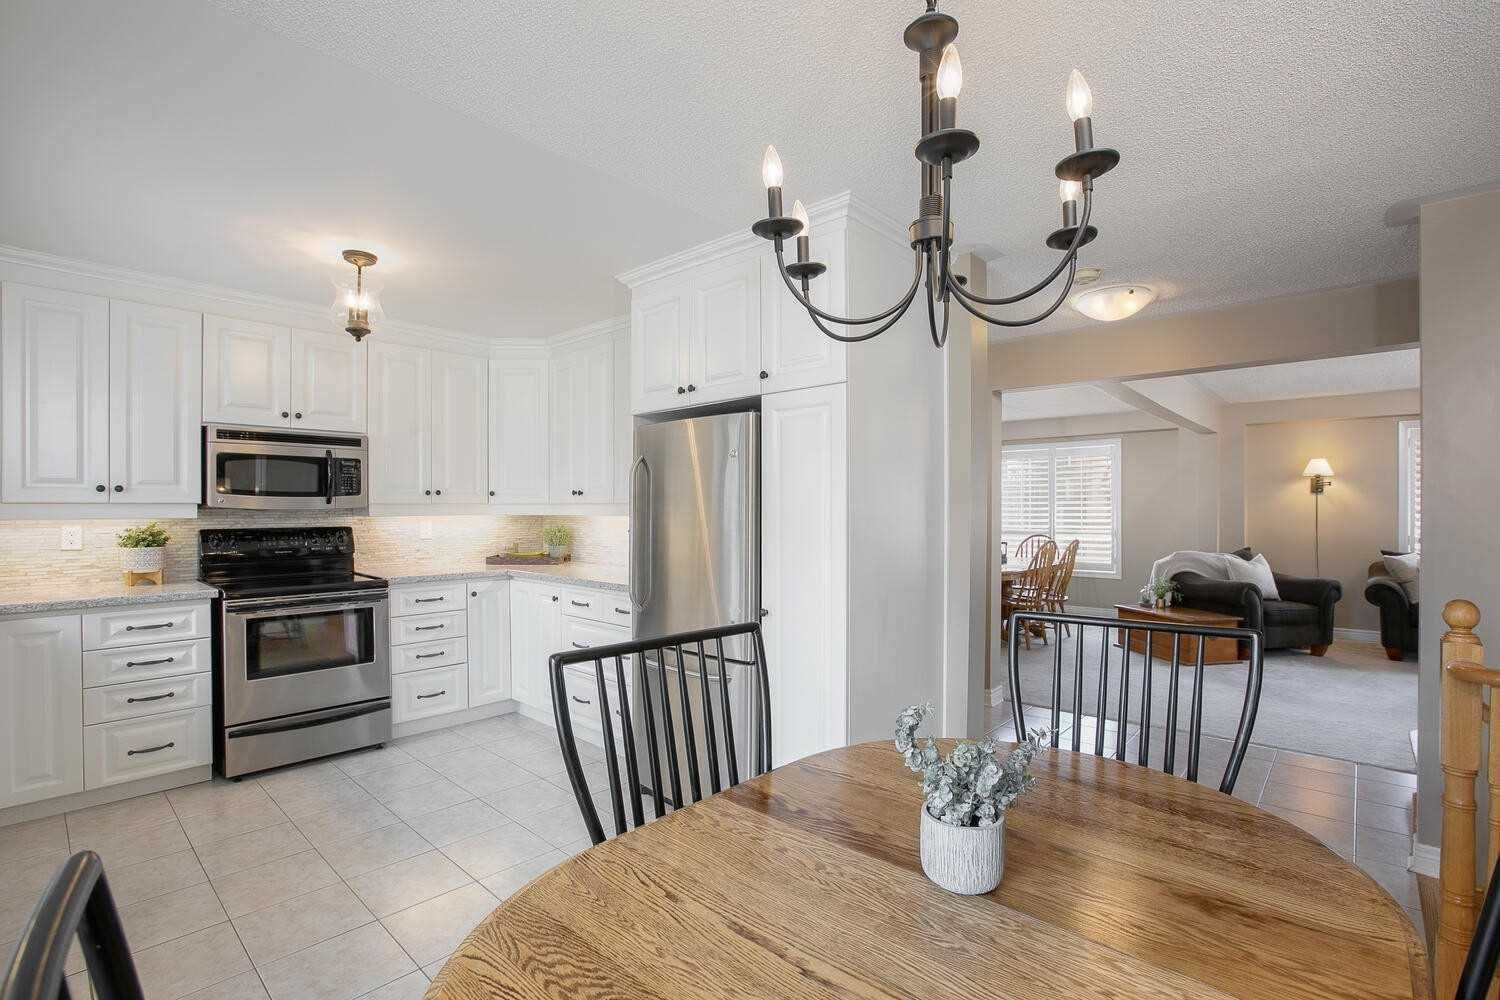 Photo 6: Photos: 190 Dean Burton Lane in Newmarket: Woodland Hill House (2-Storey) for sale : MLS®# N4918510